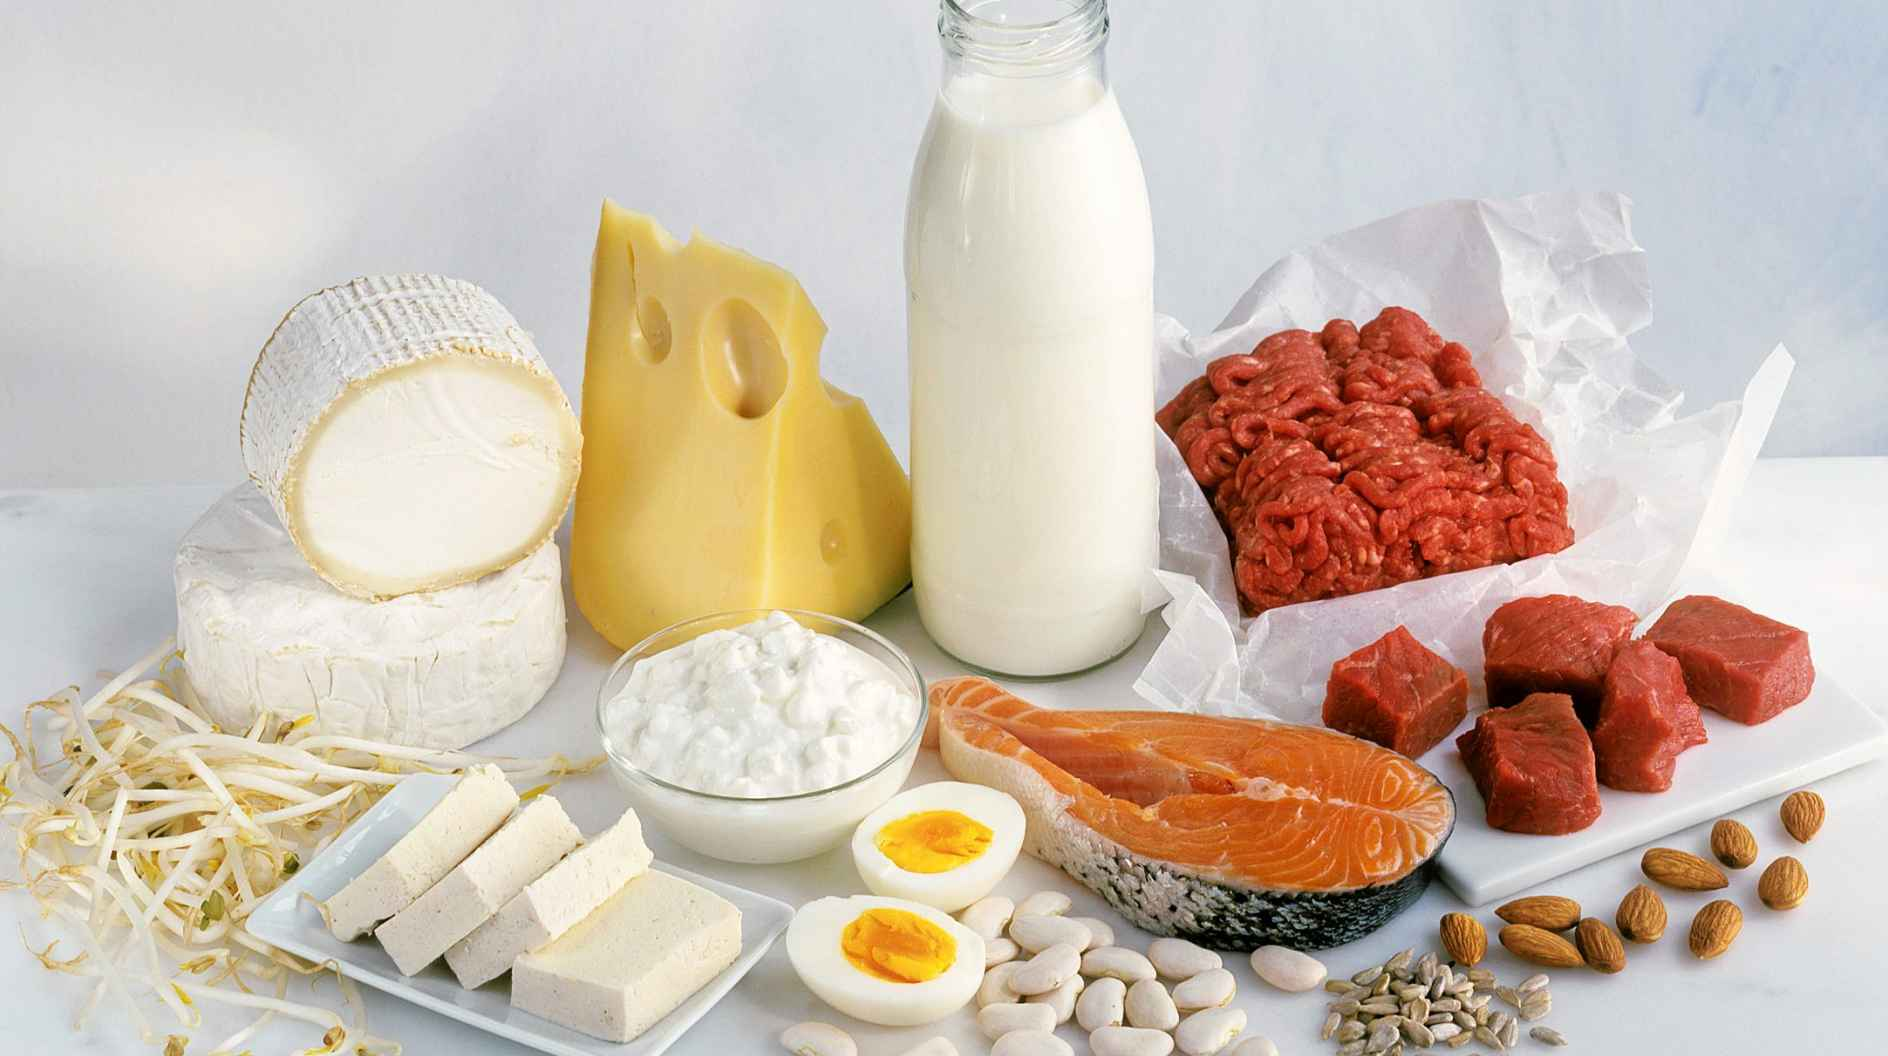 for meget protein